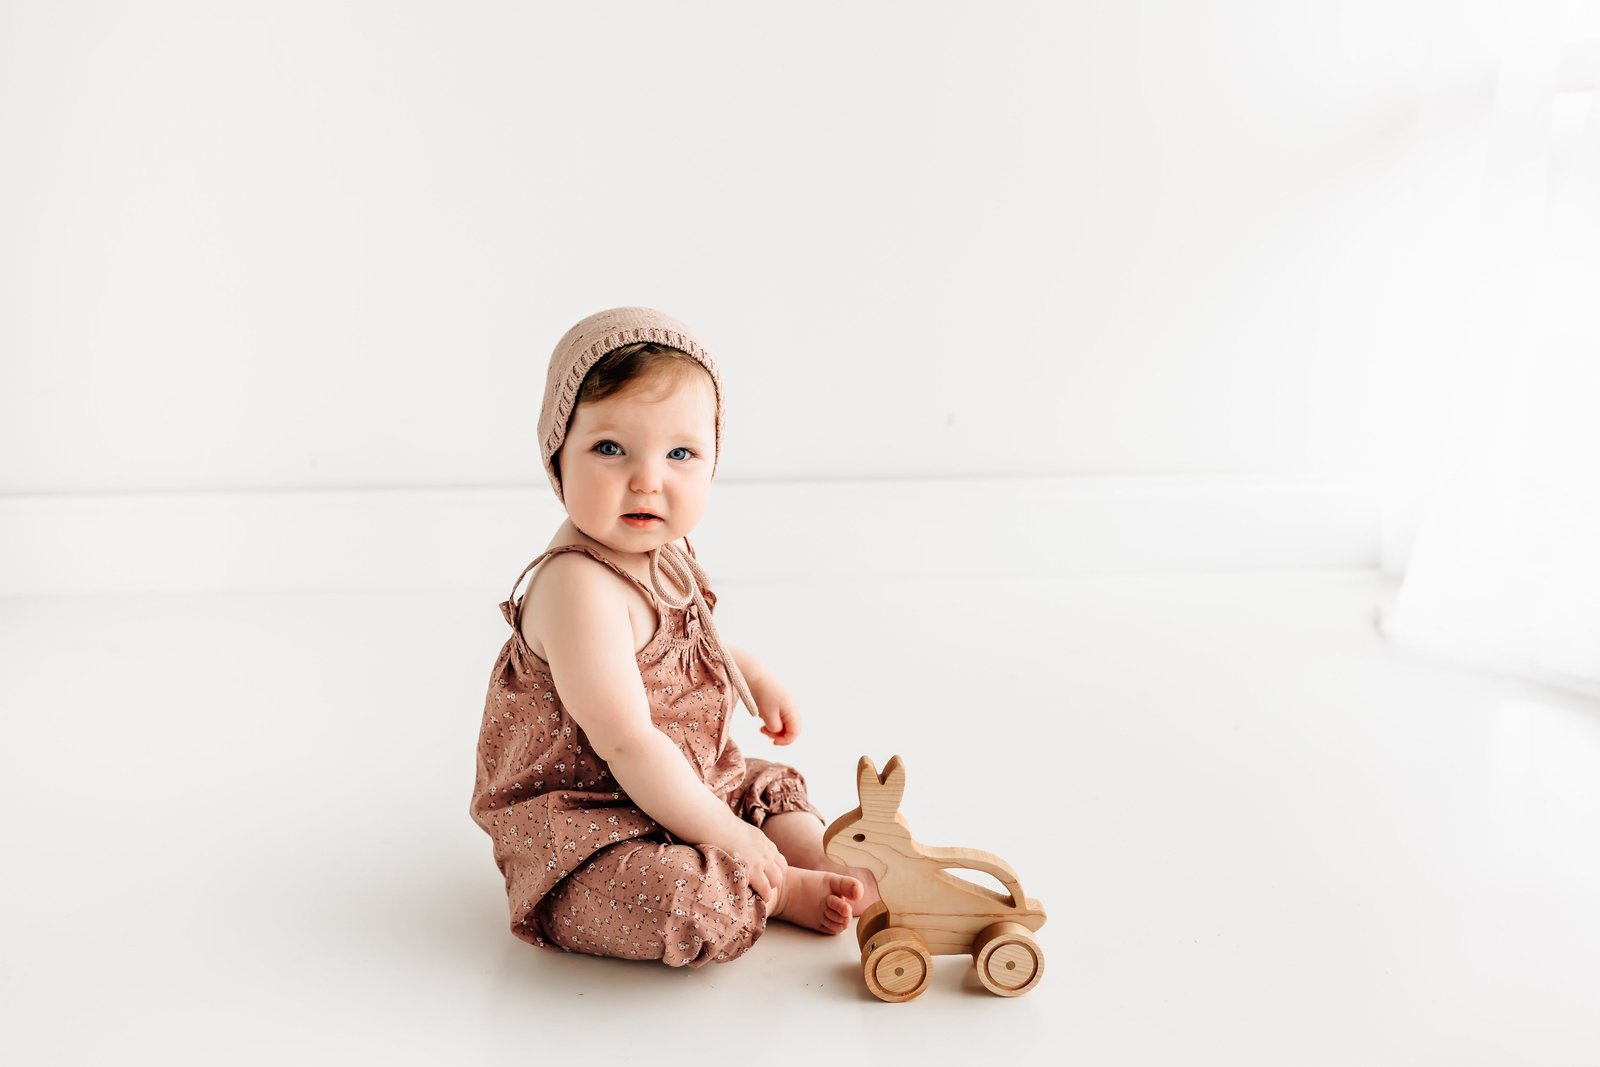 St_Louis_Baby_Photographer_Kelly_Laramore_Photography_7